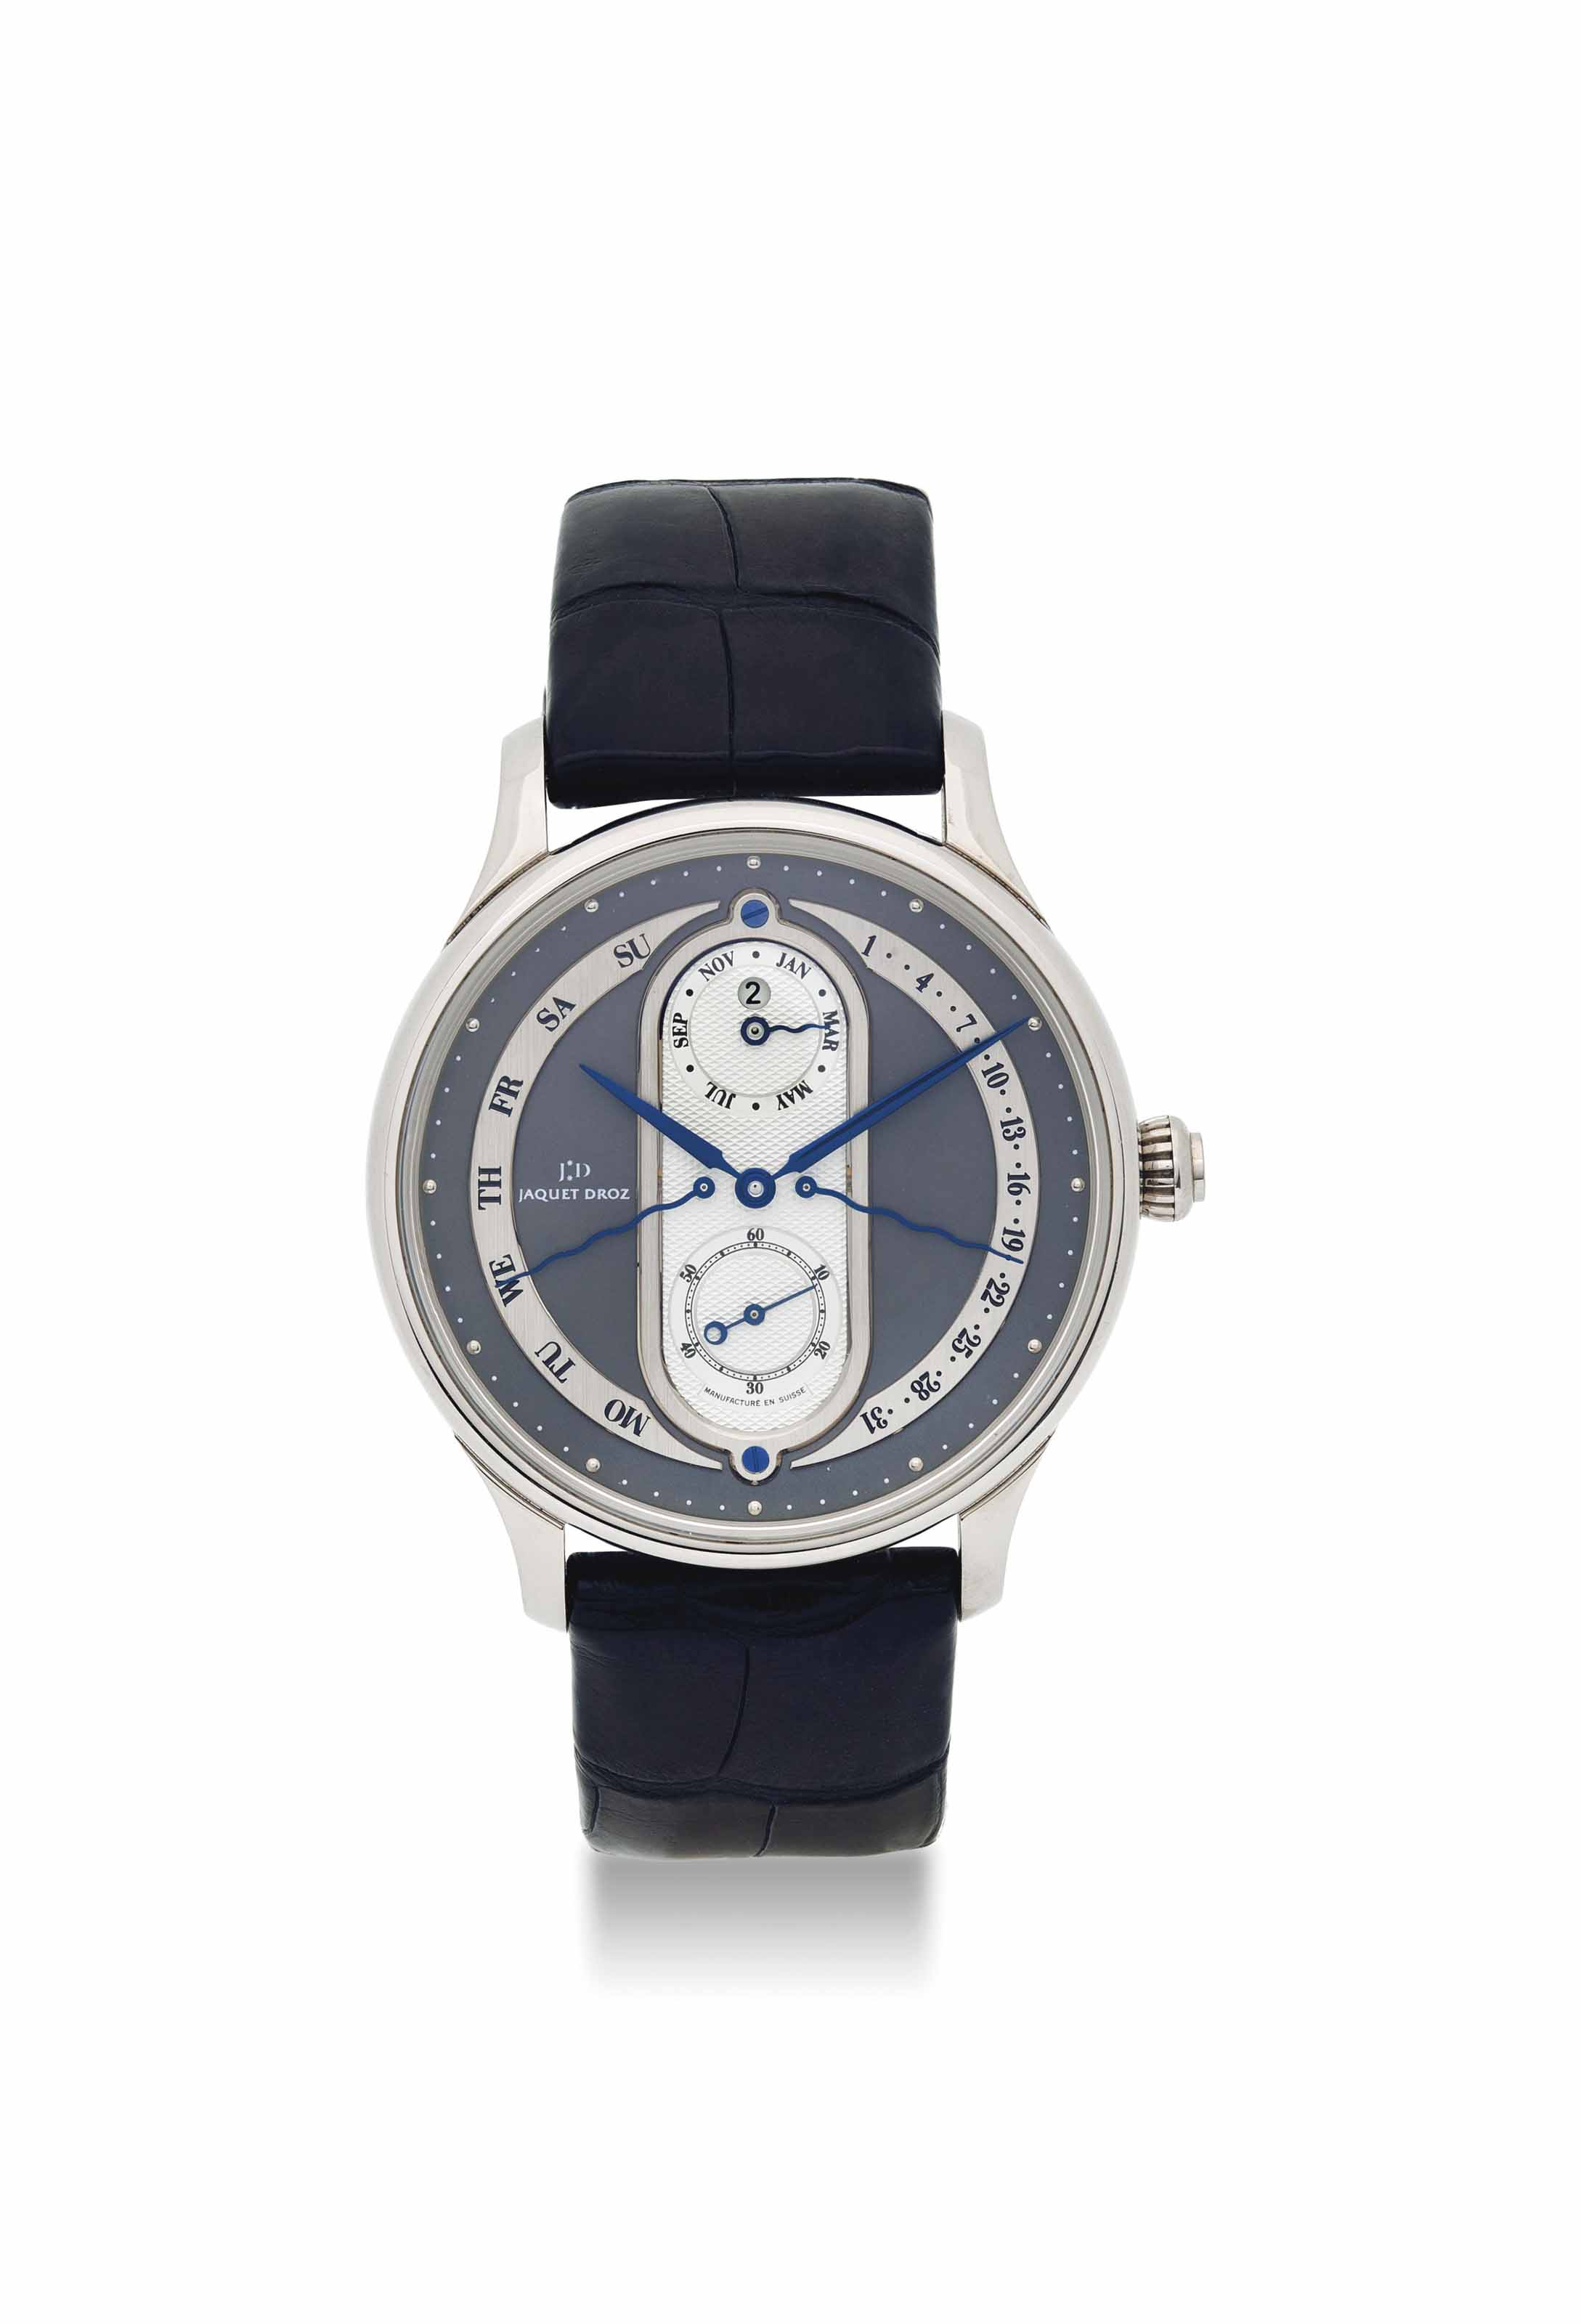 JAQUET DROZ. A RARE 18K WHITE GOLD AUTOMATIC BI-RETROGRADE PERPETUAL CALENDAR WRISTWATCH